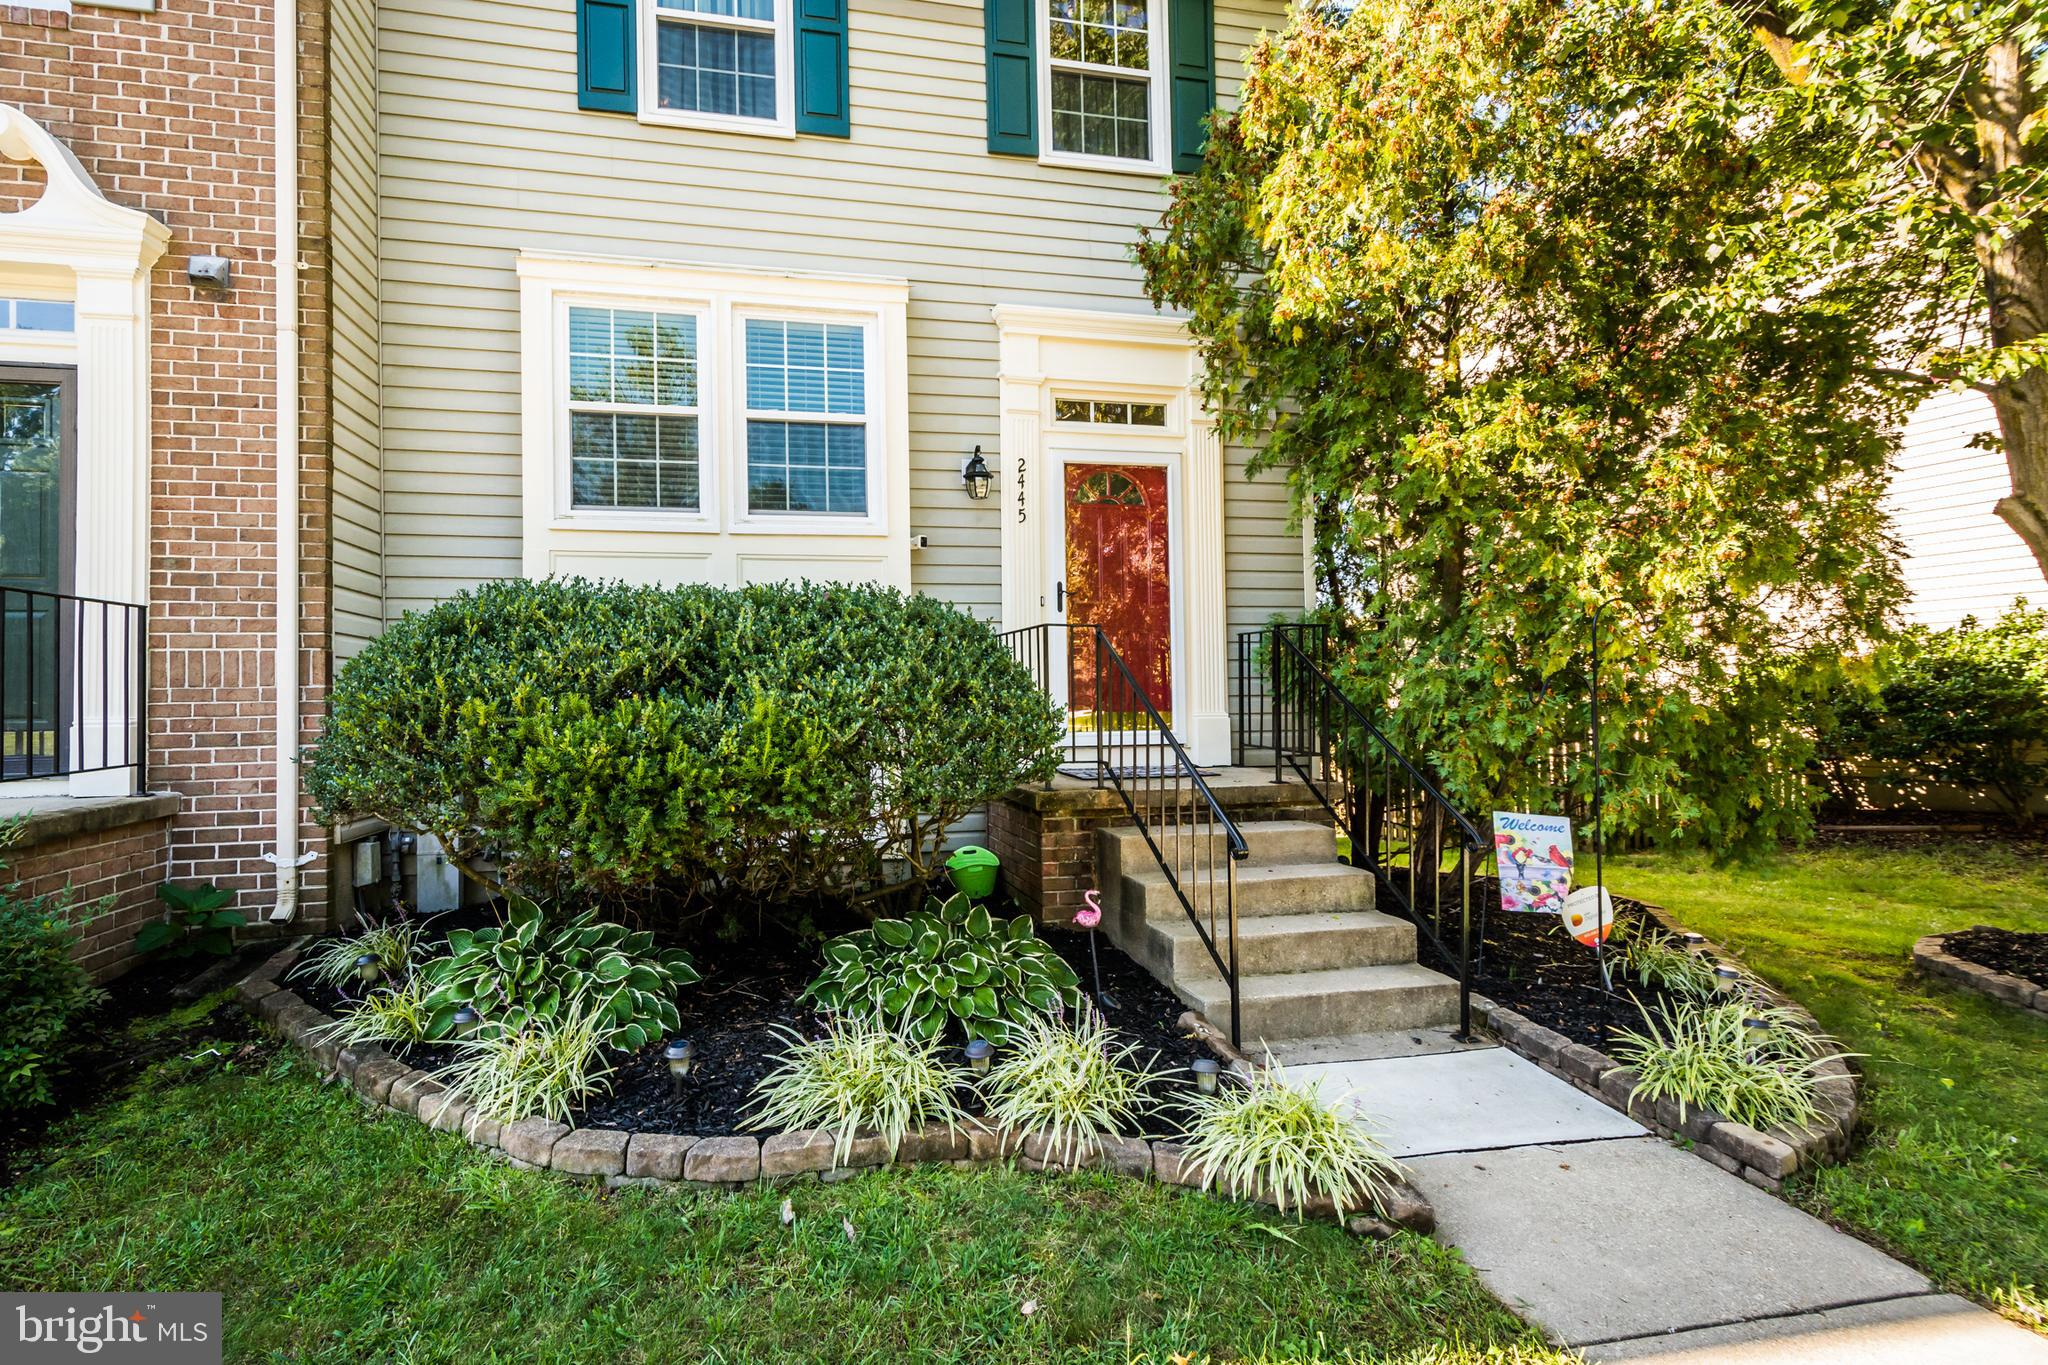 OPEN HOUSE both Saturday and Sunday 11am-2pm (October 3rd and 4th)!!!  Come see this beautifully appointed end unit townhome in Piney Orchard!  There are so many upgrades for you to enjoy, including the newly renovated gourmet kitchen.  There is LVT flooring, upgraded appliances, cabinets counter-tops, a pantry and it's gorgeous!  The eat-in portion of the kitchen enjoys the same high end flooring and has a built-in corner cabinet for additional storage and it leads to the rear slider and your expansive rear deck!  The lower level of the home has a familyroom with wood burning fireplace, a full bath, a laundry/storage room and a walk-out level rear door and storm door to a beautiful patio and the rear fenced yard.  The upper floor houses the 3 bedrooms including the primary bedroom plus 2 additional bedrooms and a full bathroom w/dual vanities.